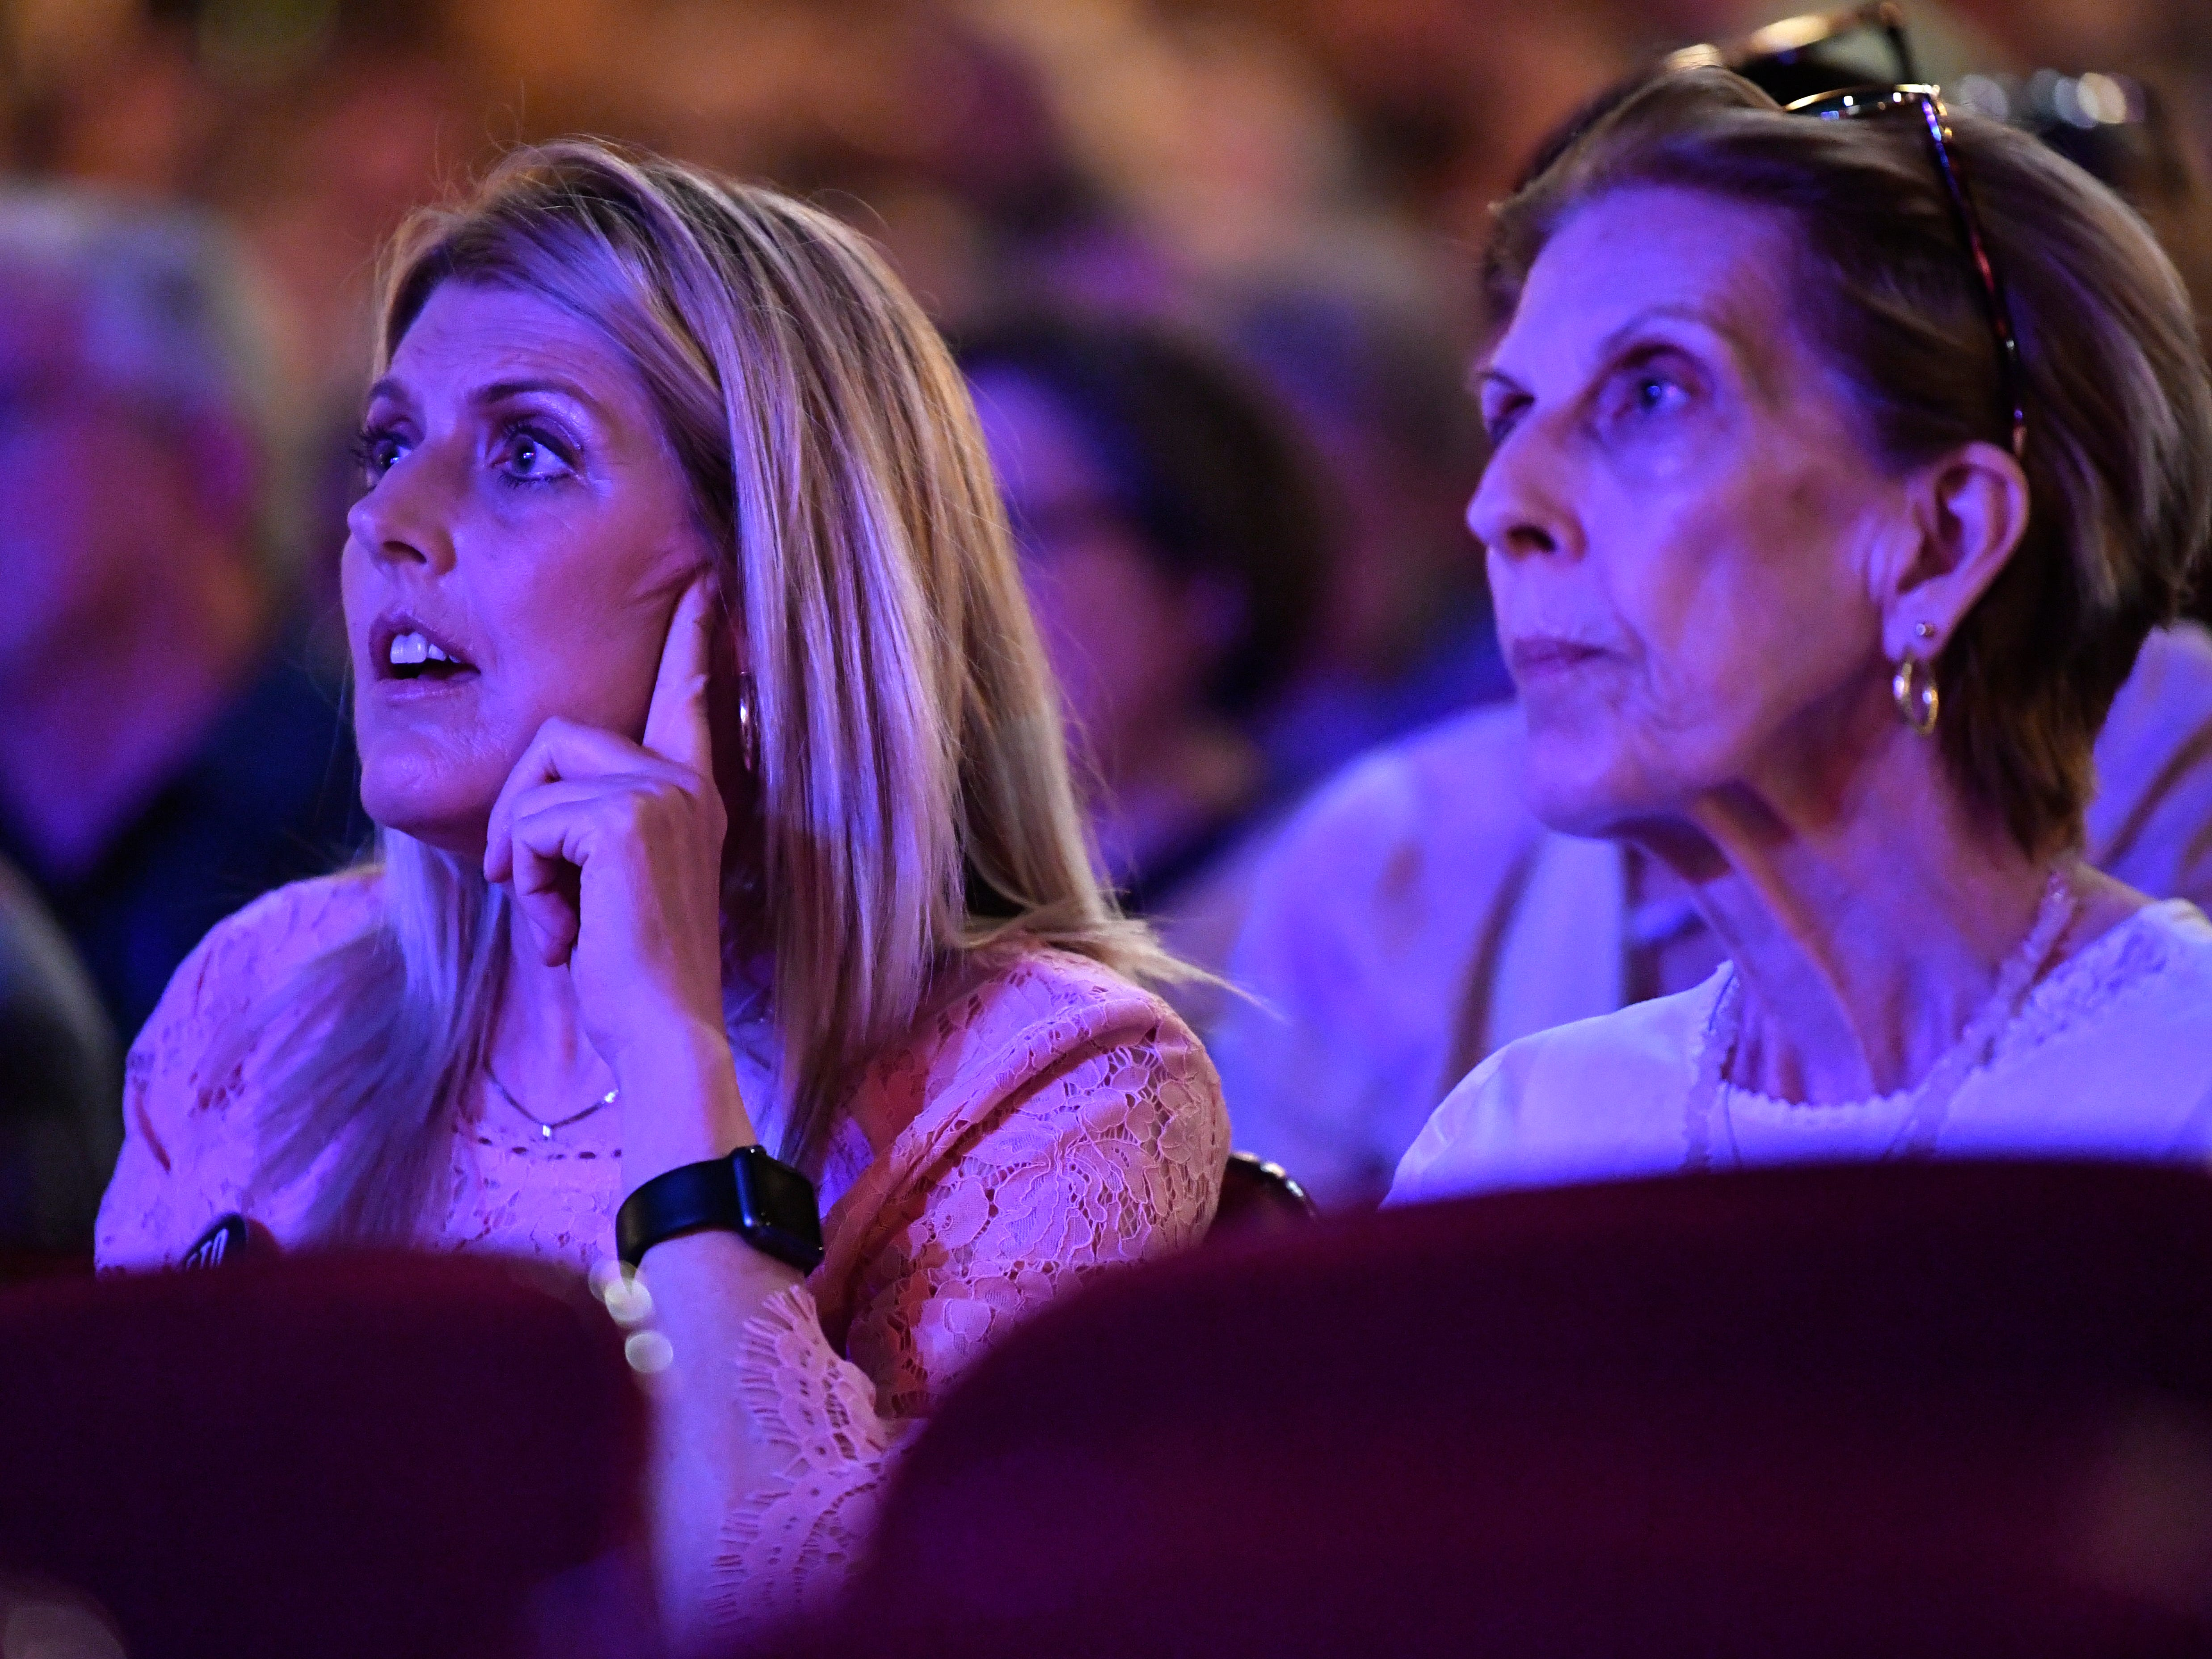 Billie Duggan (left) listens with her mother Reta Morrison to U.S. Senate candidate Beto O'Rourke during a town hall meeting at the Paramount Theatre Thursday August 2, 2018. O'Rourke, who hopes to unseat Republican Ted Cruz, was joined by four other Democratic candidates for state office.